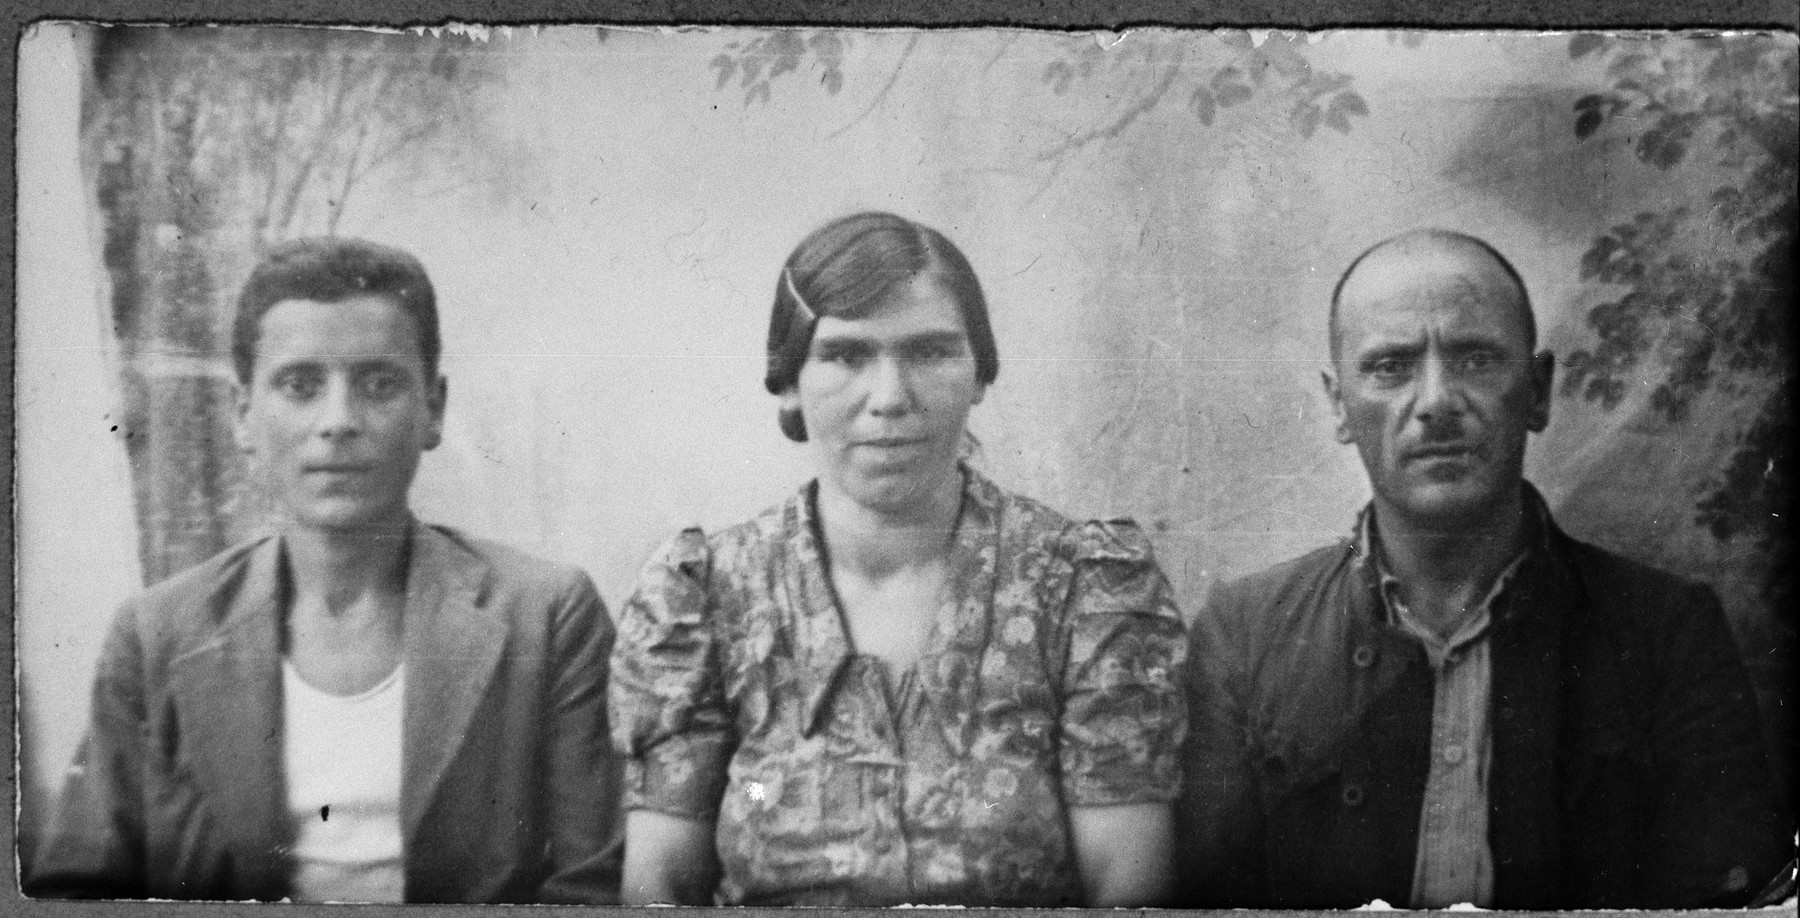 Portrait of Avram (Y.) Sadikario, his wife, Luna, and his son, Yosef.  Avram and Yosef were laborers.  They lived at Krstitsa 30 in Bitola.